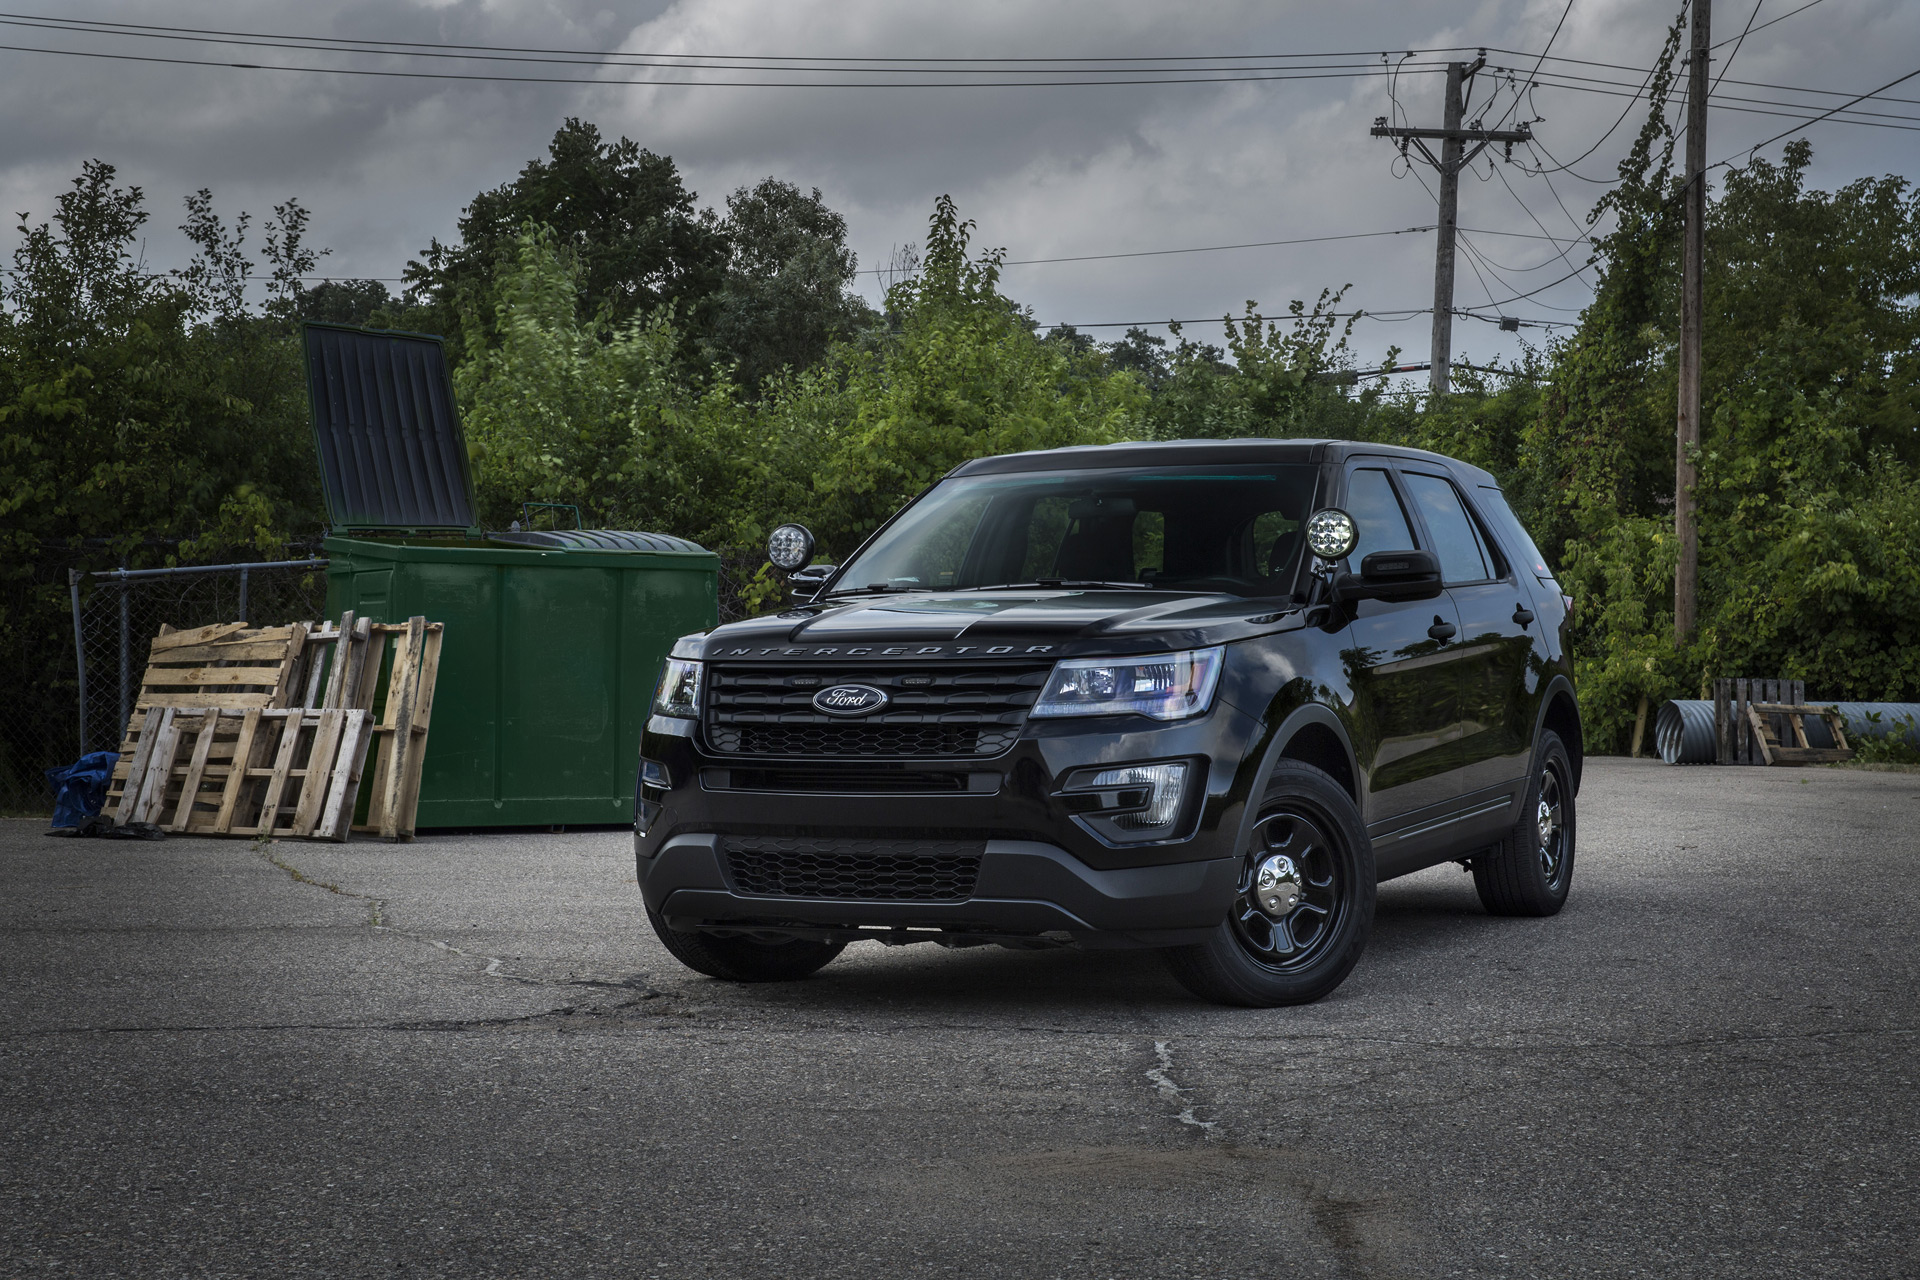 Speeders beware ford develops stealthy light bar for cop cars mozeypictures Image collections